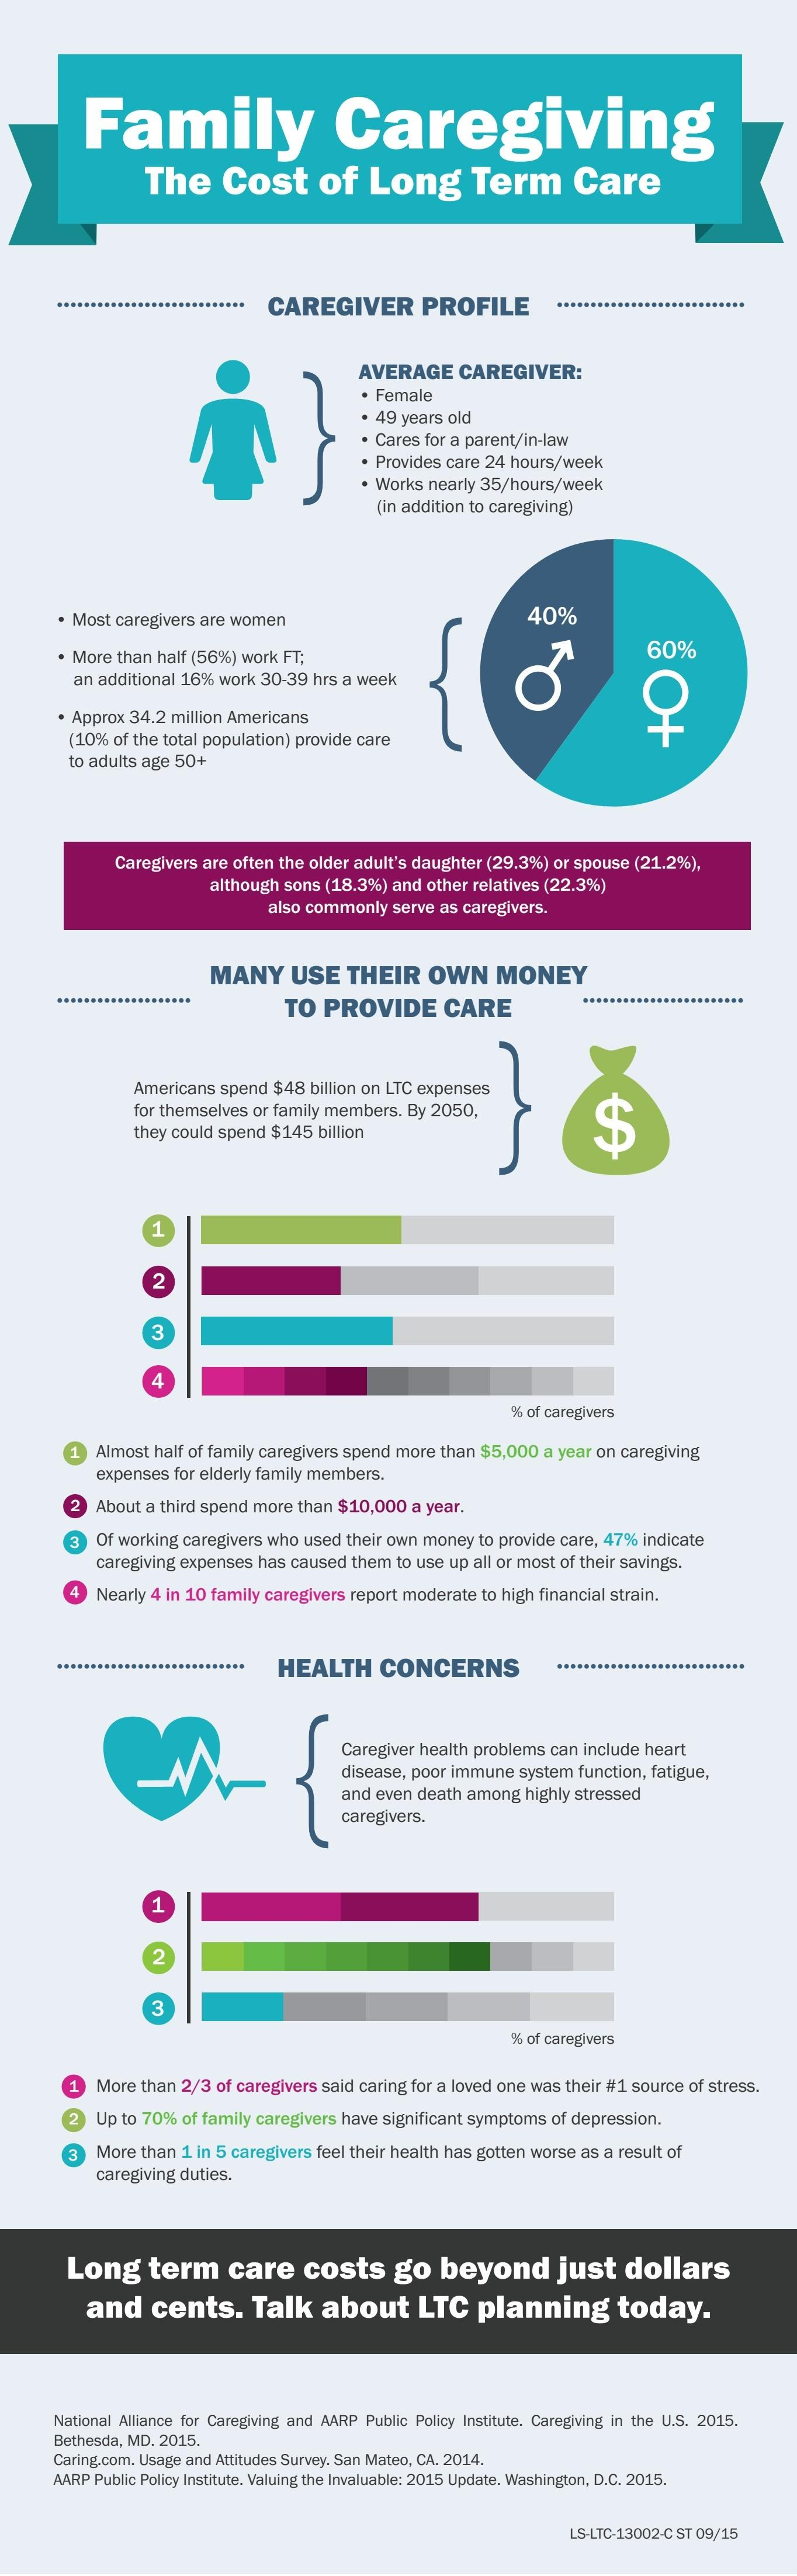 family-caregiving-the-cost-of-long-term-care